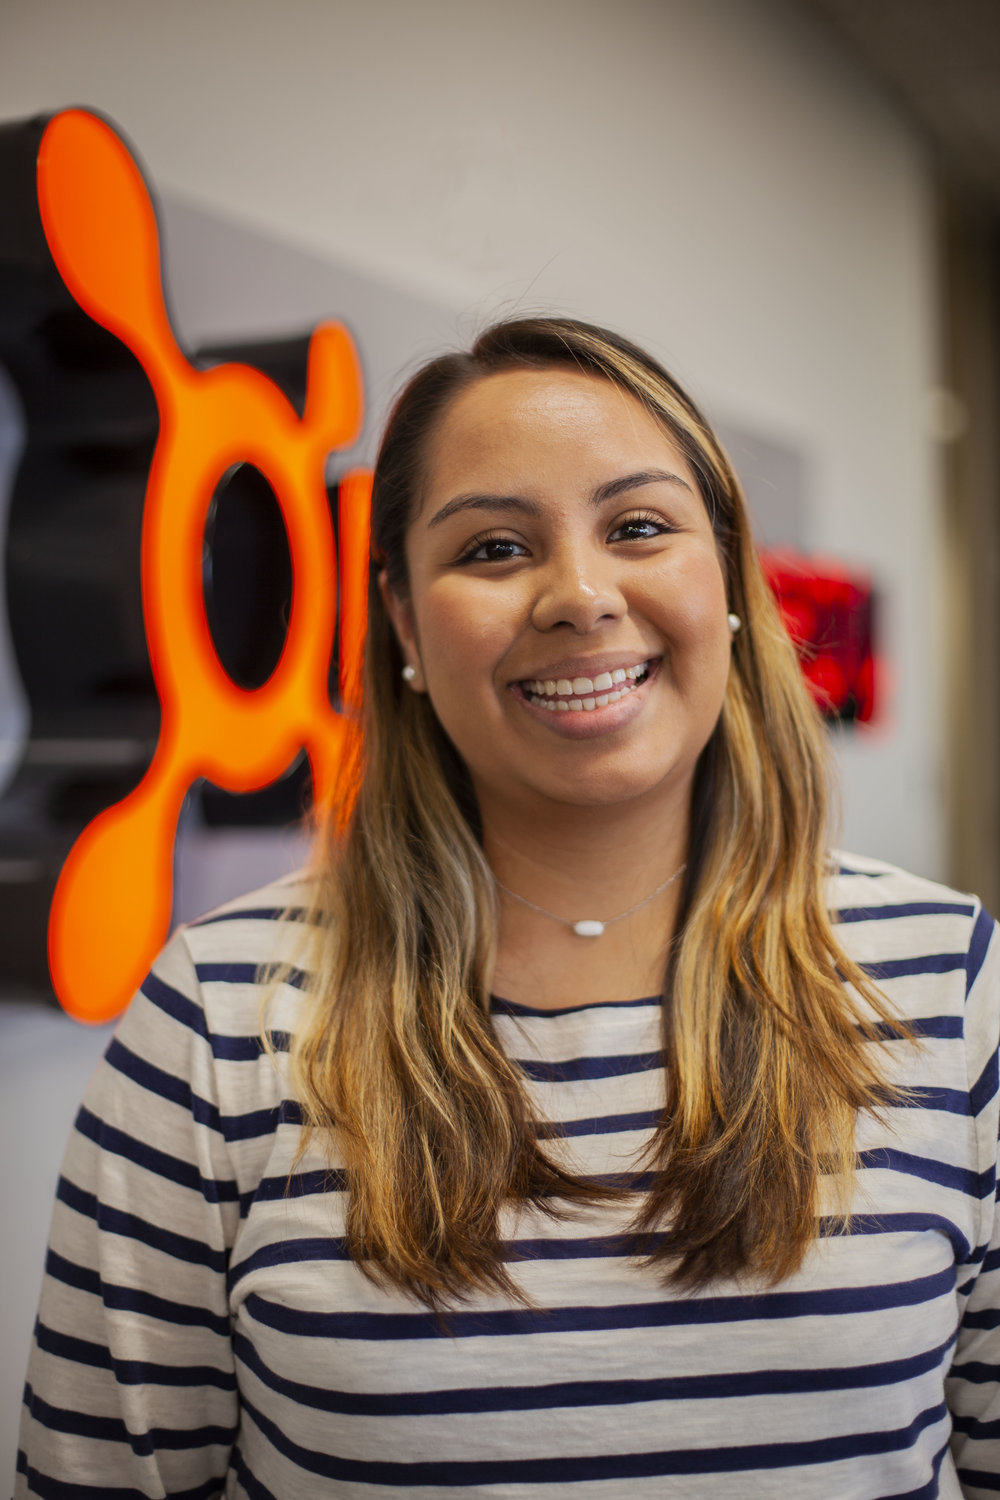 Michele Avilez - HR Administrative AssistantMichele joined Orangetheory as a Sales Associate back in 2015 and brings a wealth of business knowledge to the Honors Holdings Team. In her spare time she's hands-on with DIY projects, reading a good book, and rooting for her Packers on Sundays.